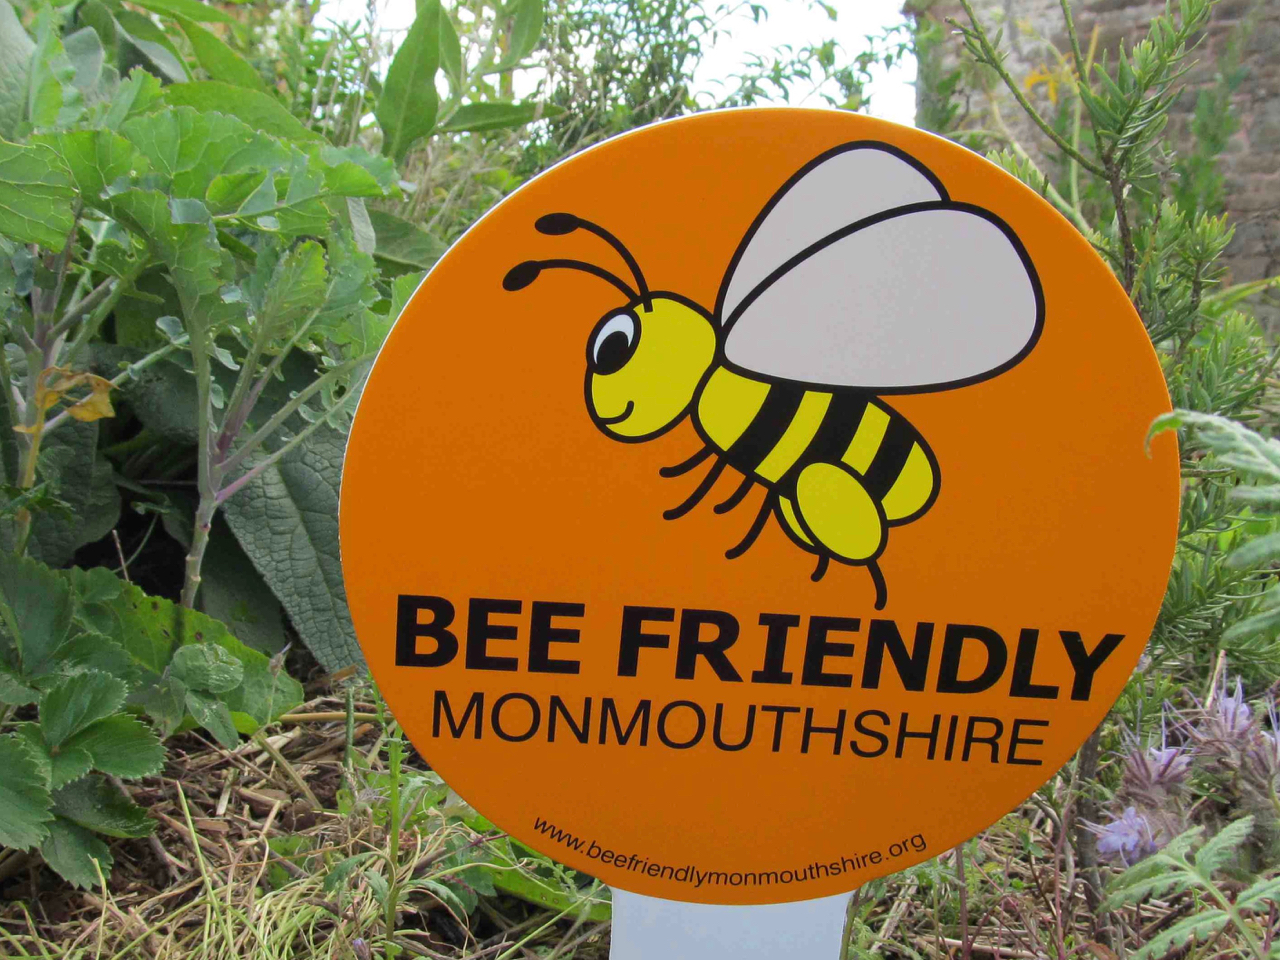 Bee Friendly sign in the Edible Garden